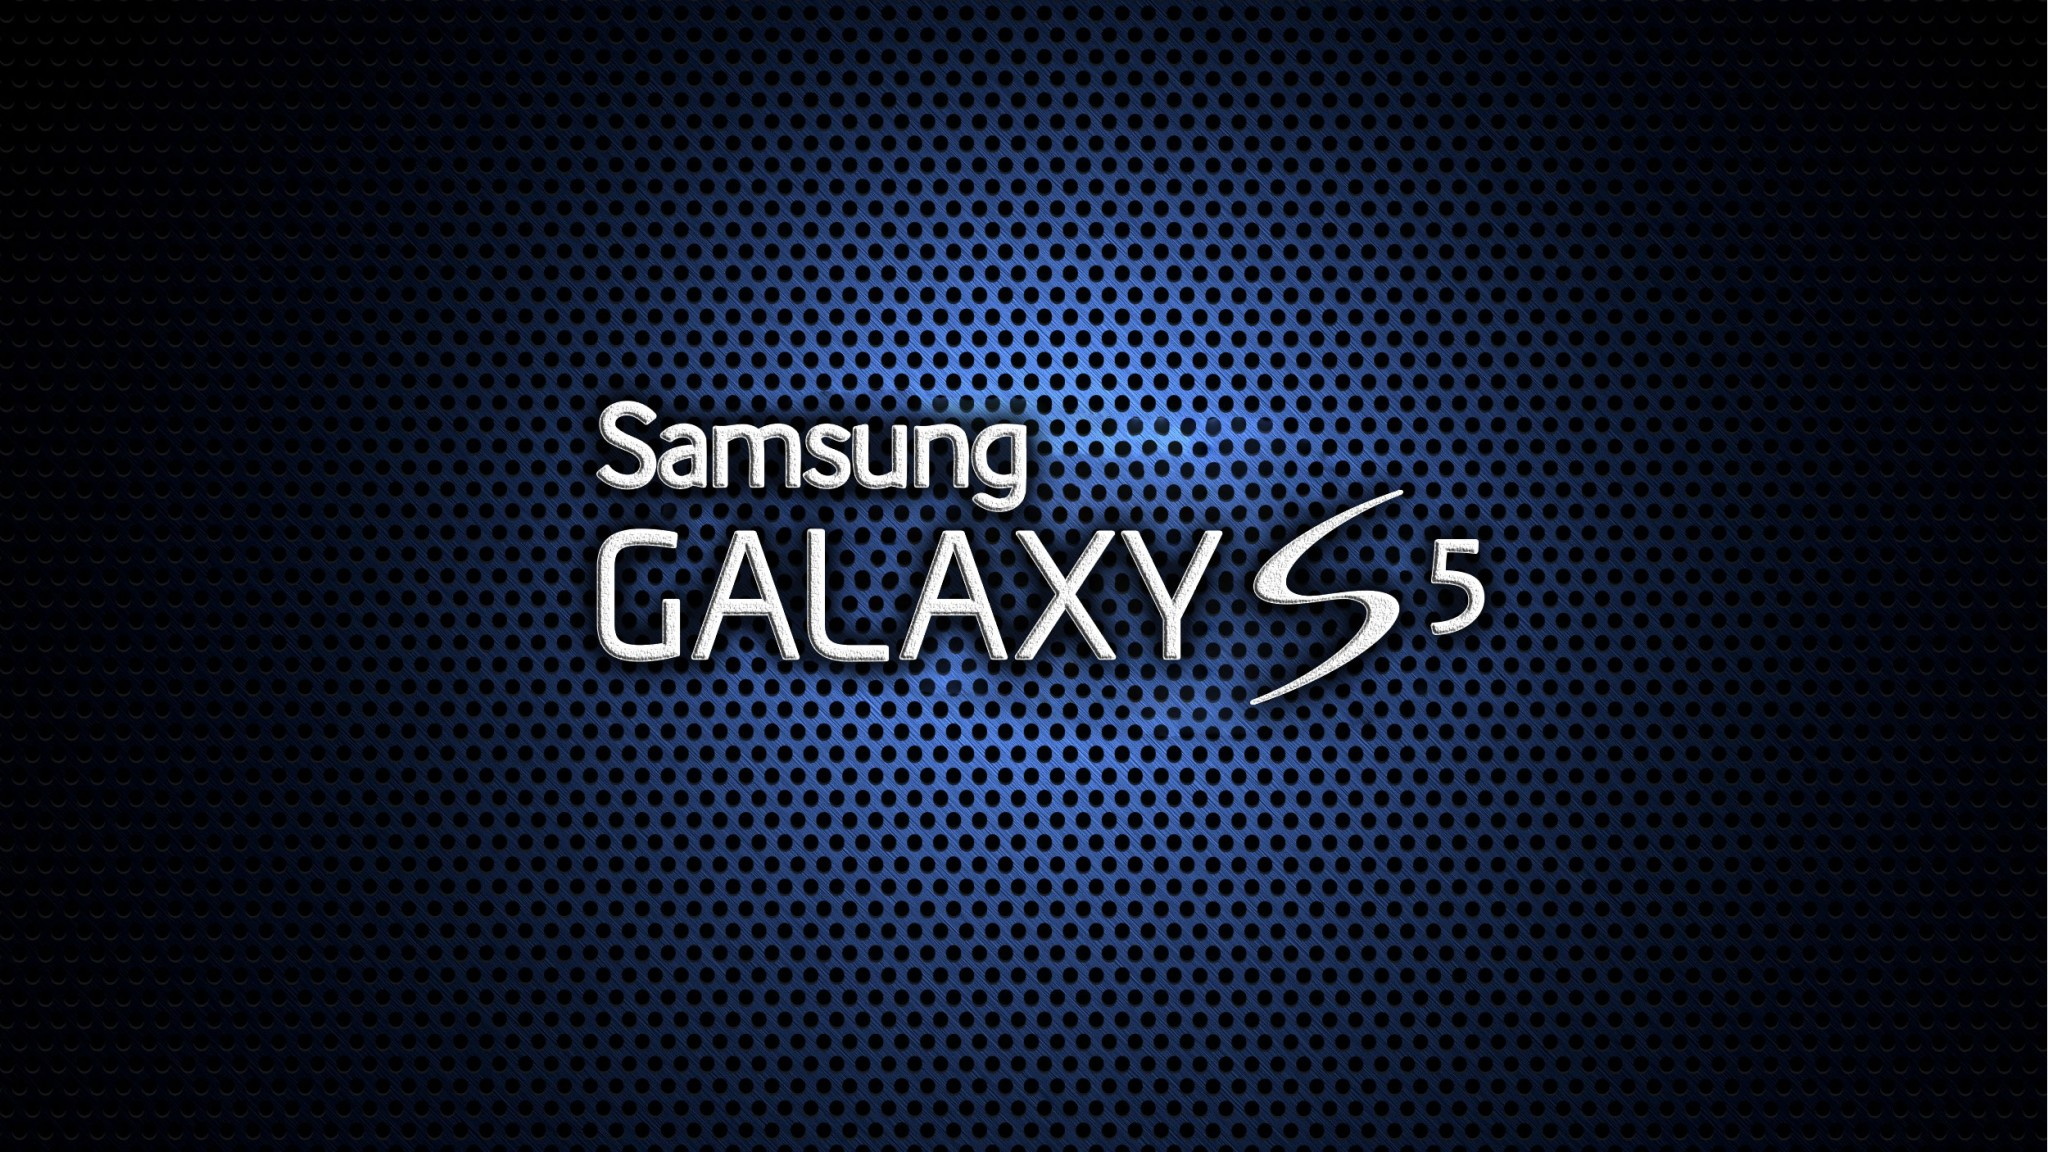 Samsung Galaxy S D Wallpapers Desktop Backgrounds Hd Pictures